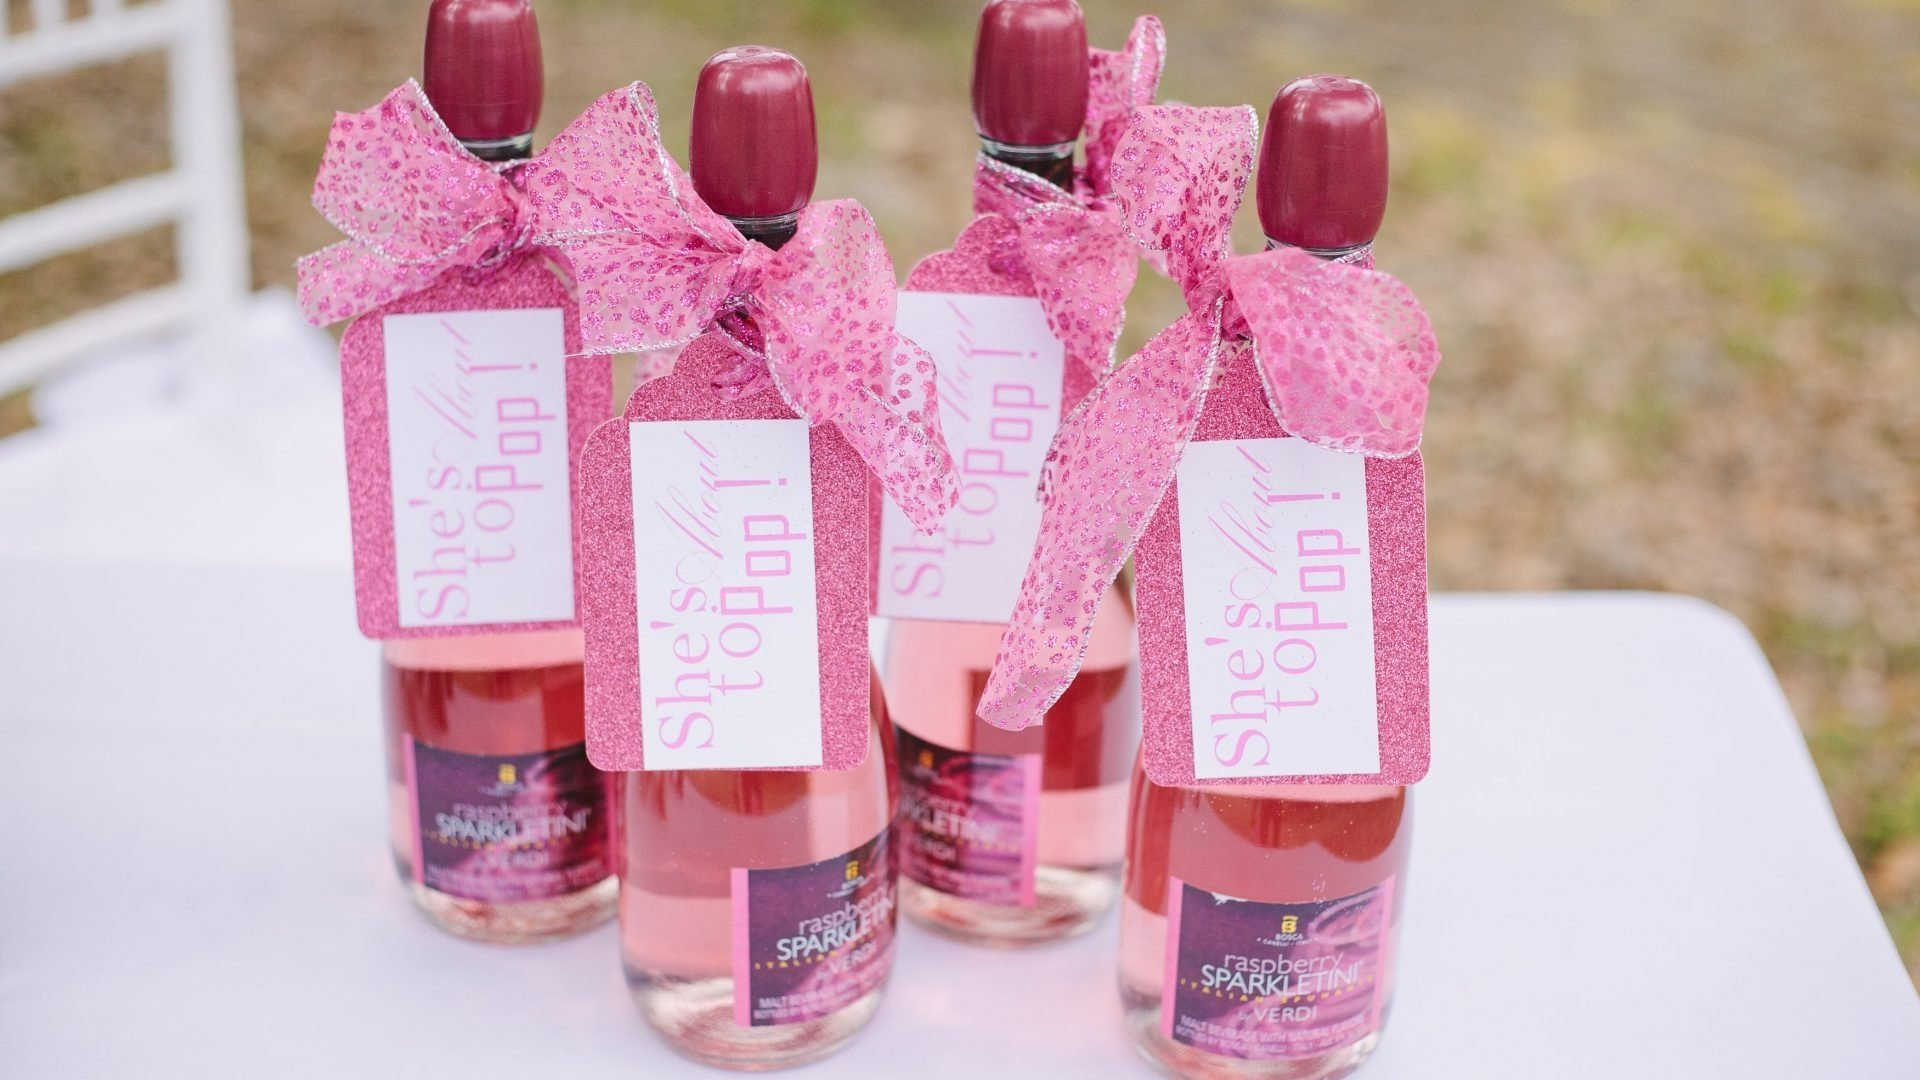 10 Pretty Baby Shower Game Gift Ideas For Guests baby showerme gifts for guests ideas winners cheap prizes and favors 2021